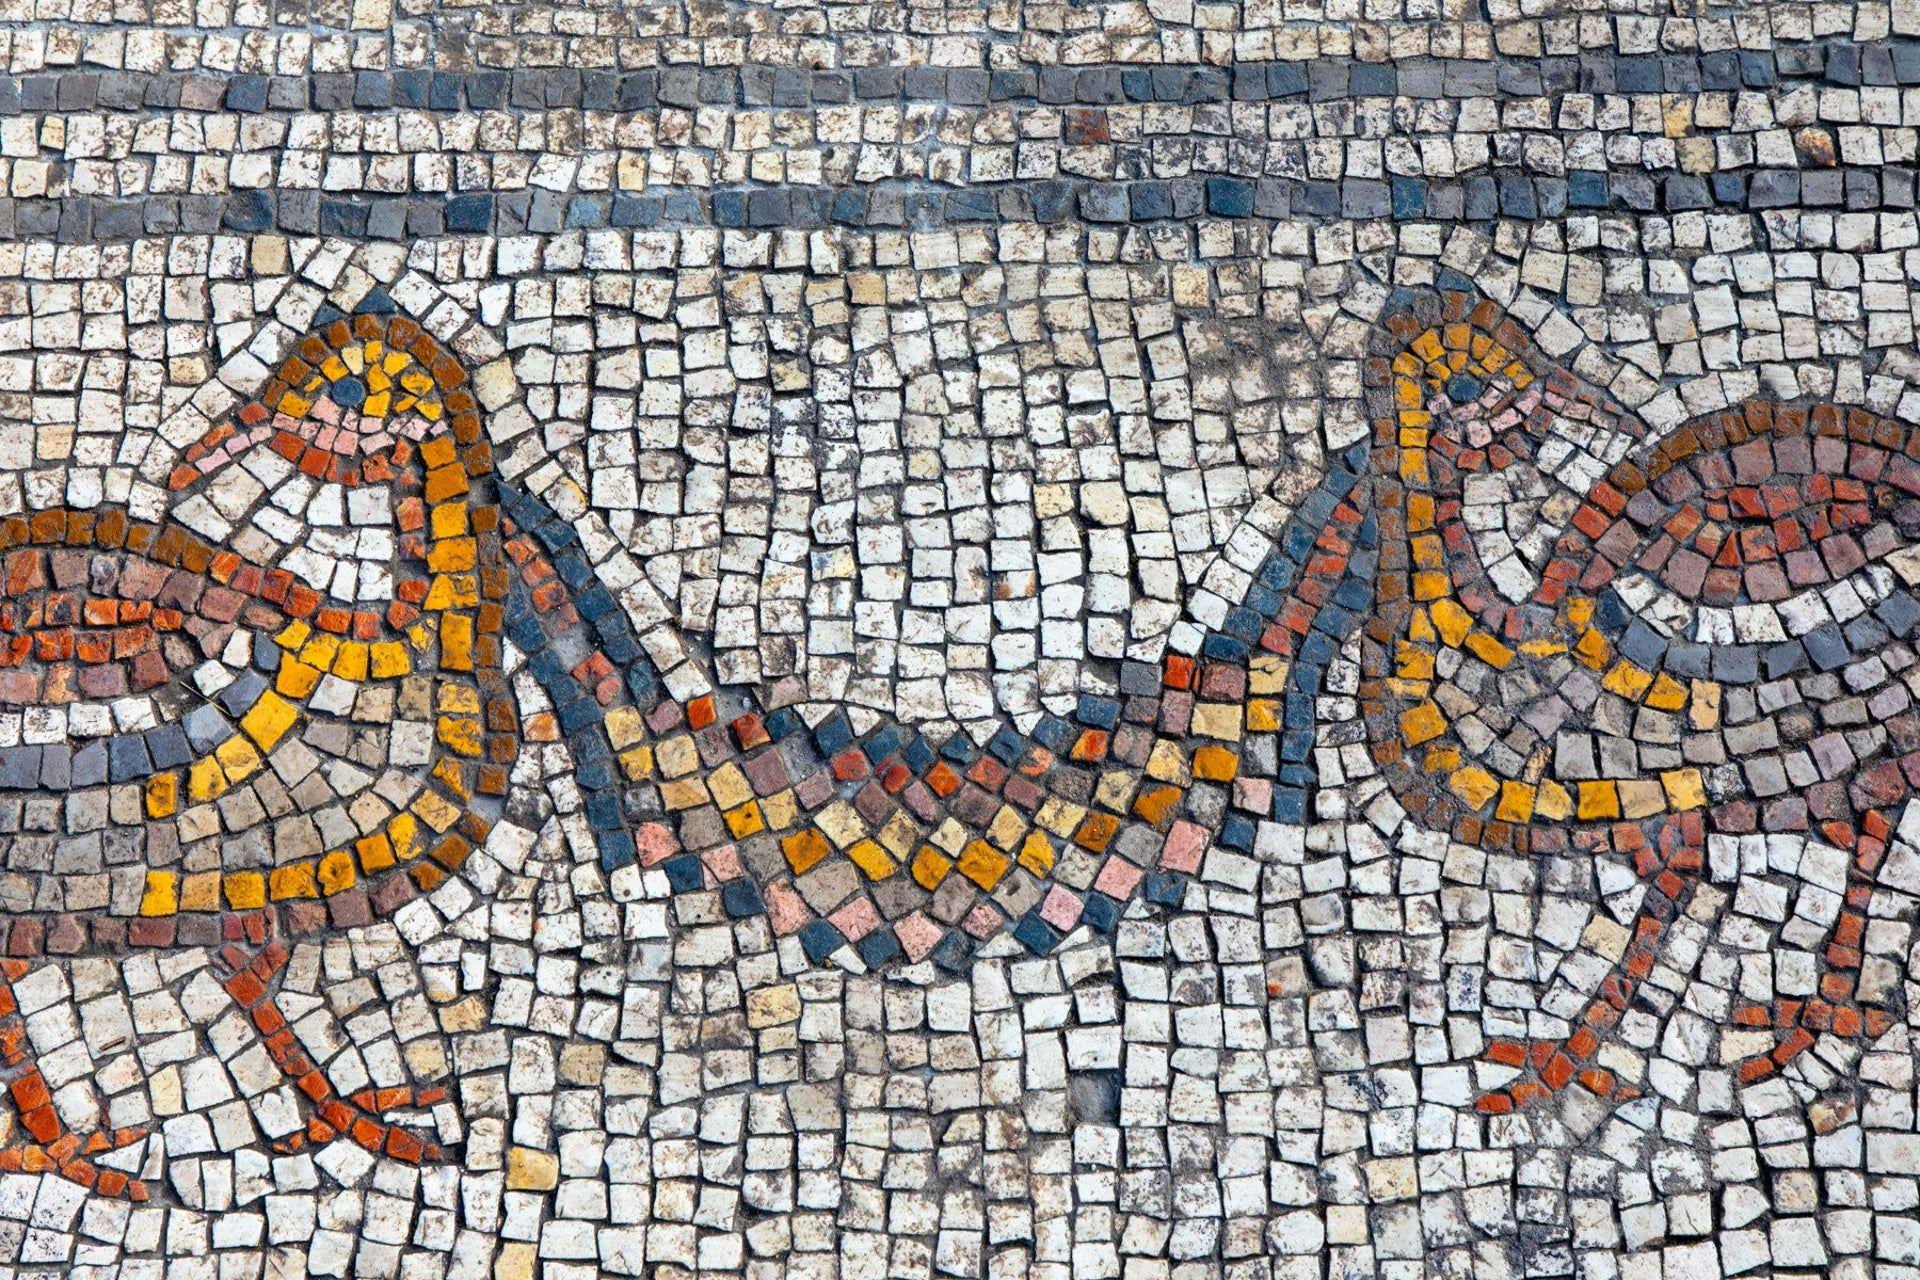 Birds in the mosaic carpet of the Burnt Church